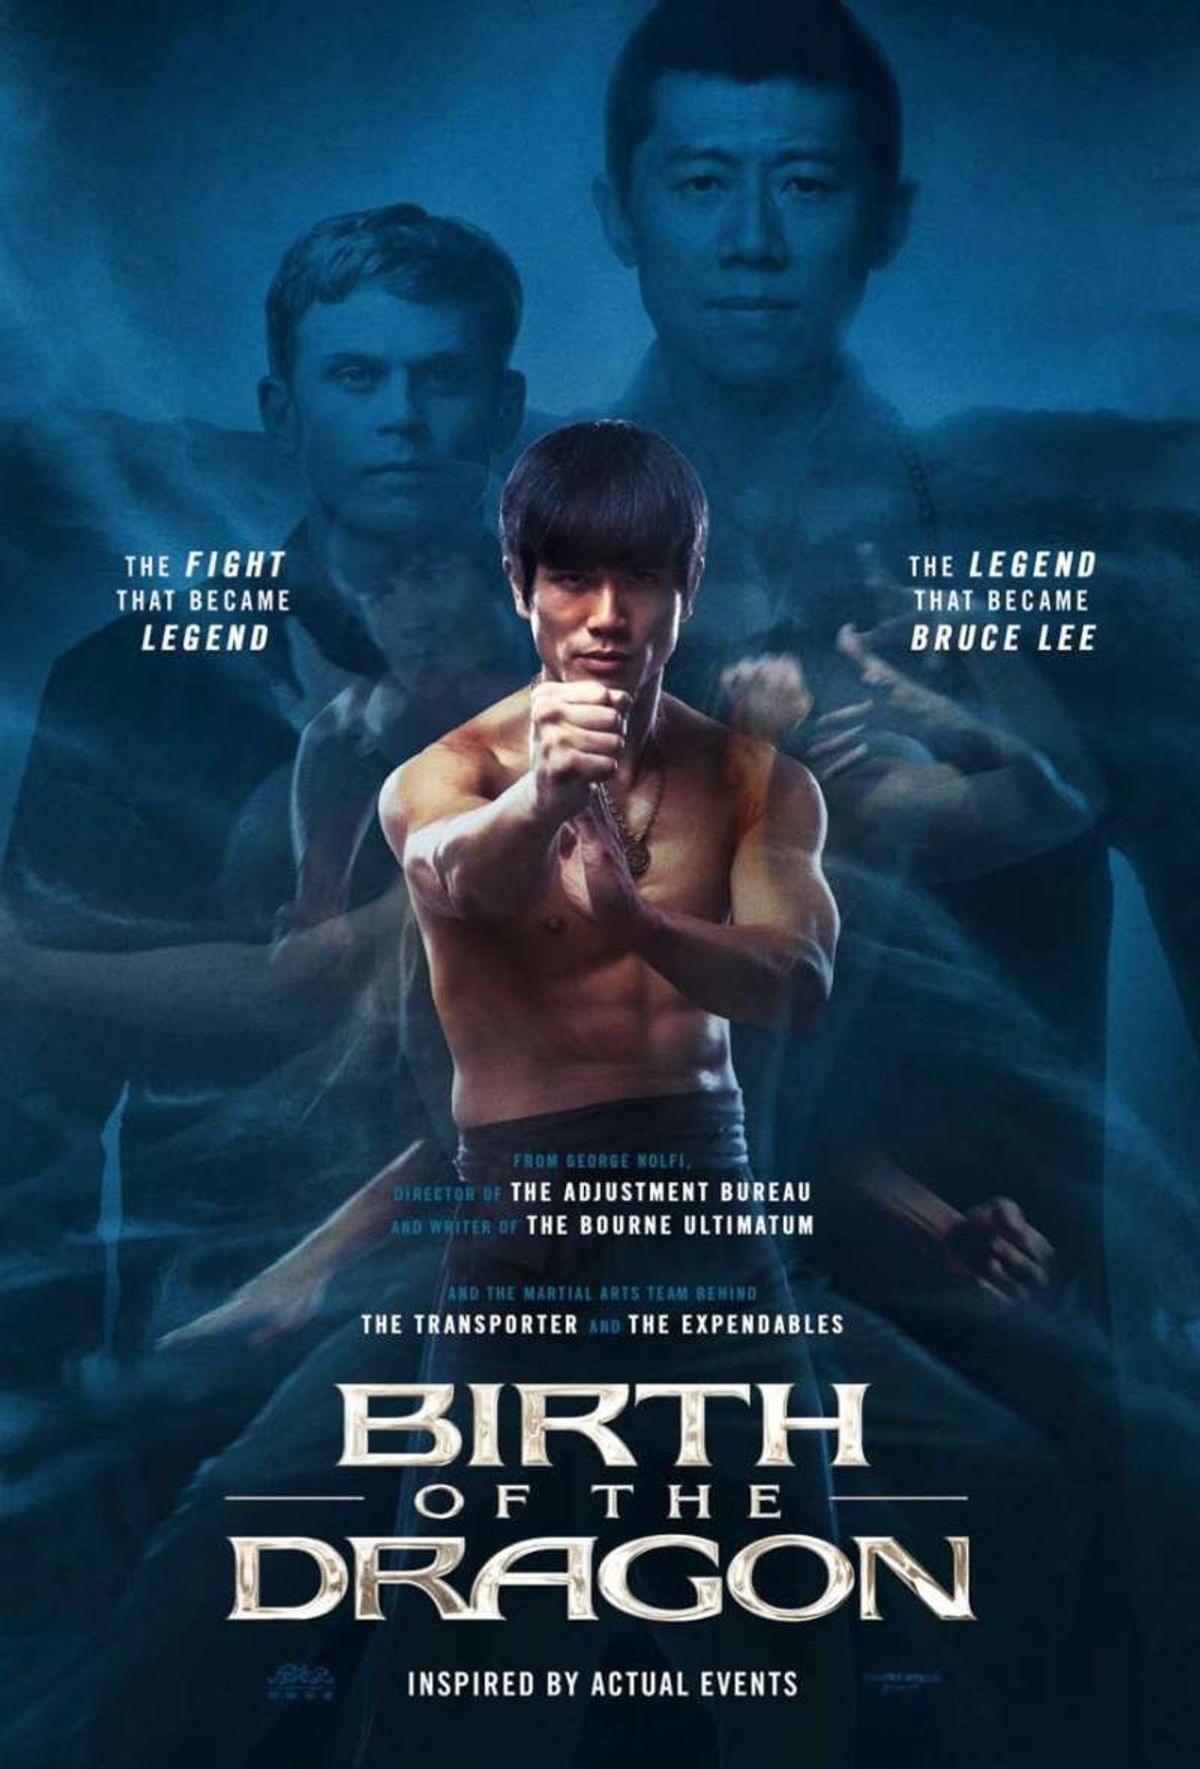 """Movie Thoughts: Breaking Down the Historical Accuracies in the """"Birth of the Dragon"""" Trailer"""